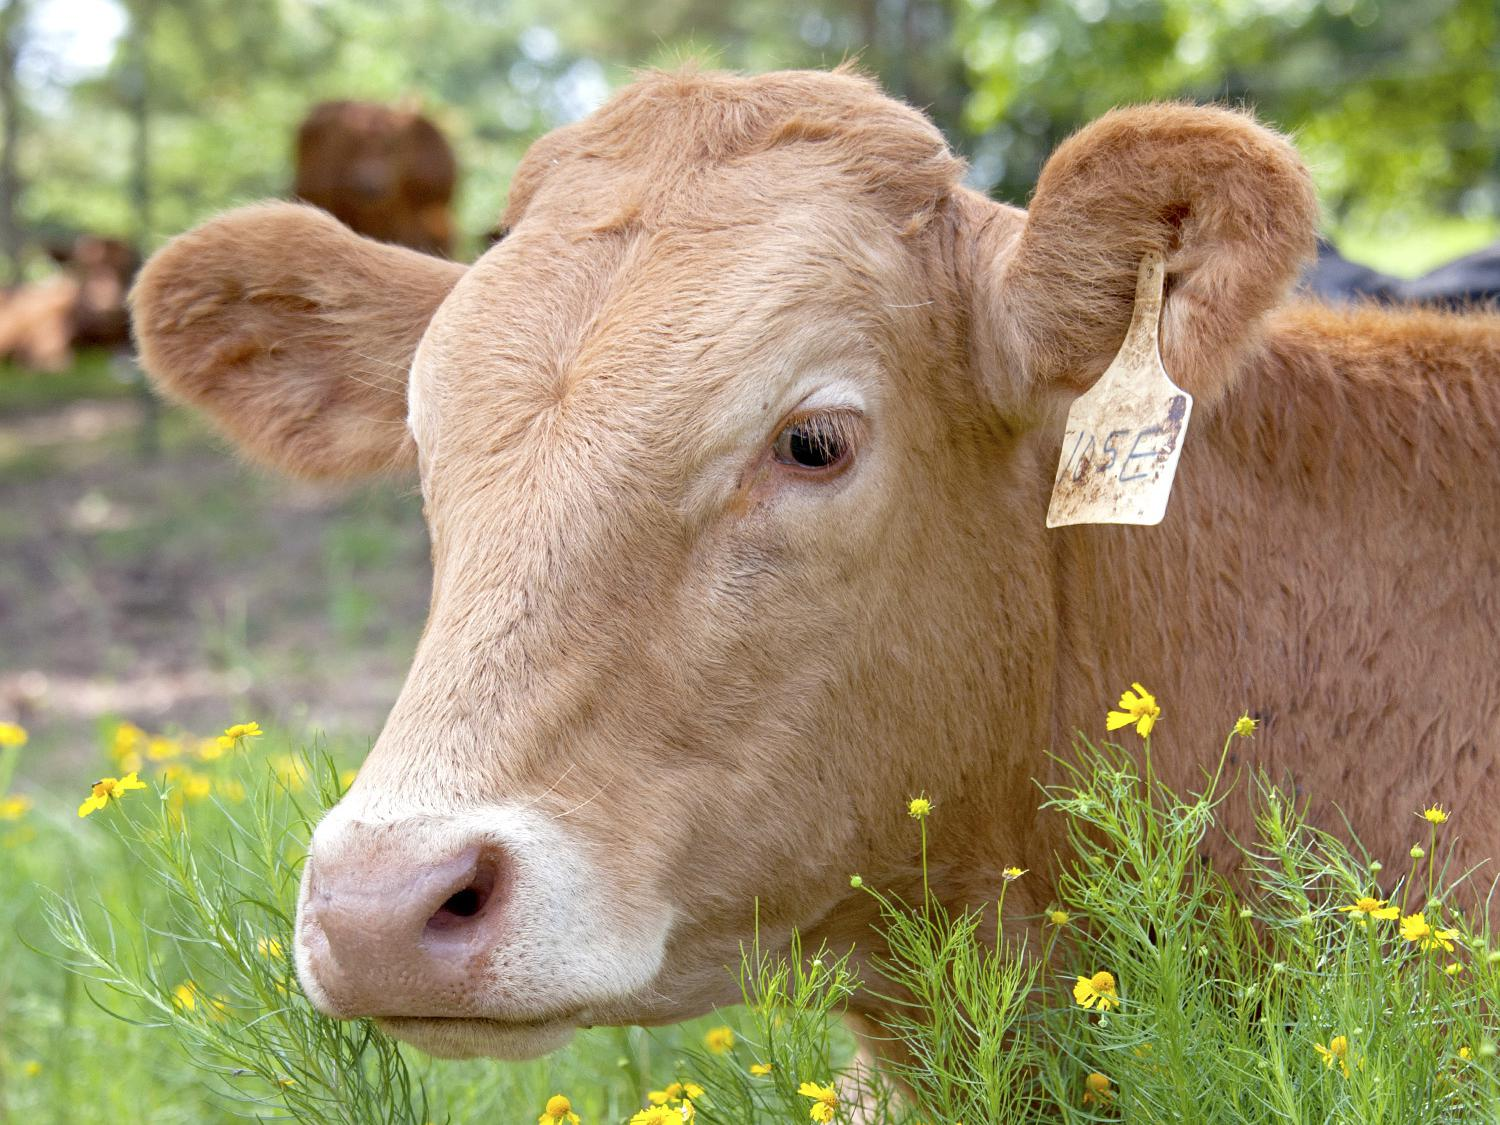 Mississippi cattle, such as this one on the Beaverdam Fresh Farms in Clay County, Mississippi, on July 8, 2014, eat less and grow slower during the hottest months. While Mississippi has not faced extremely dry conditions in recent years, the state's herd numbers are still down, just like those in drought-stricken regions. (Photo by MSU Ag Communications/Kat Lawrence)